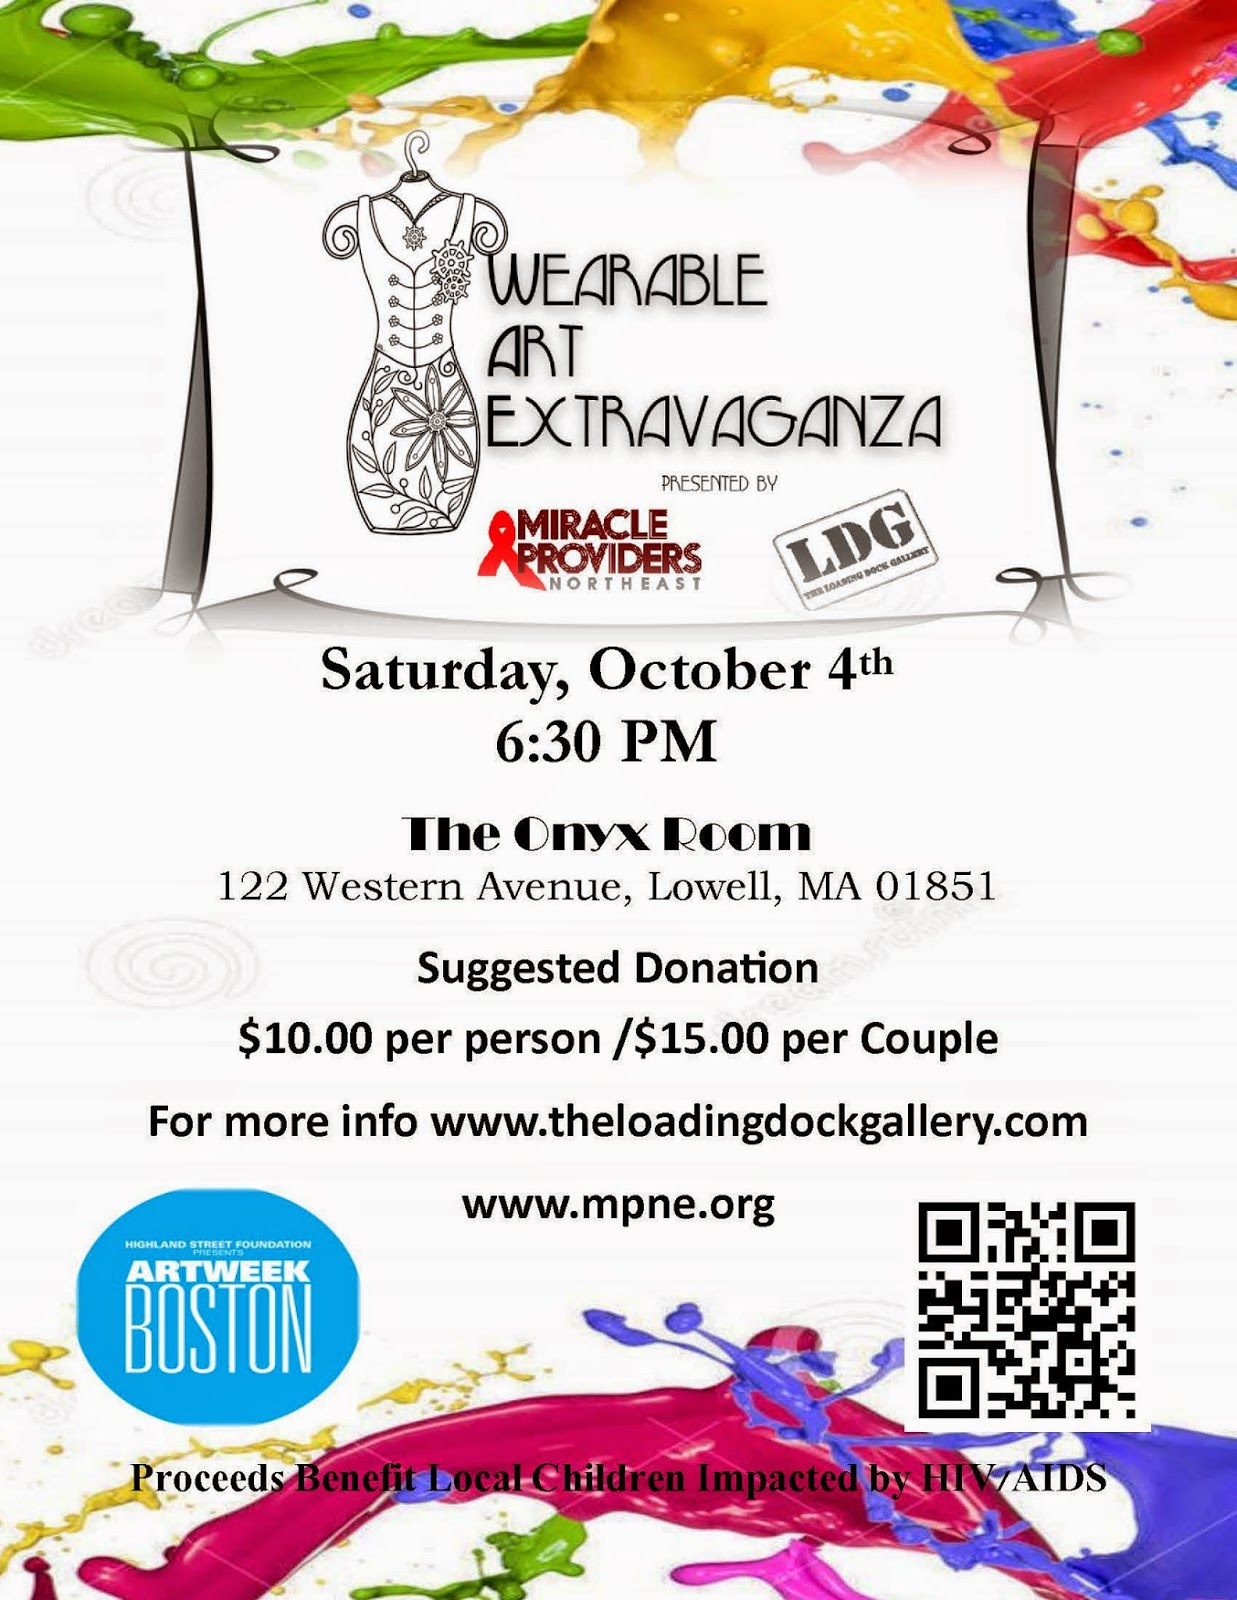 Wearable Art Extravaganza from the Loading Dock Gallery & Miracle Providers NE